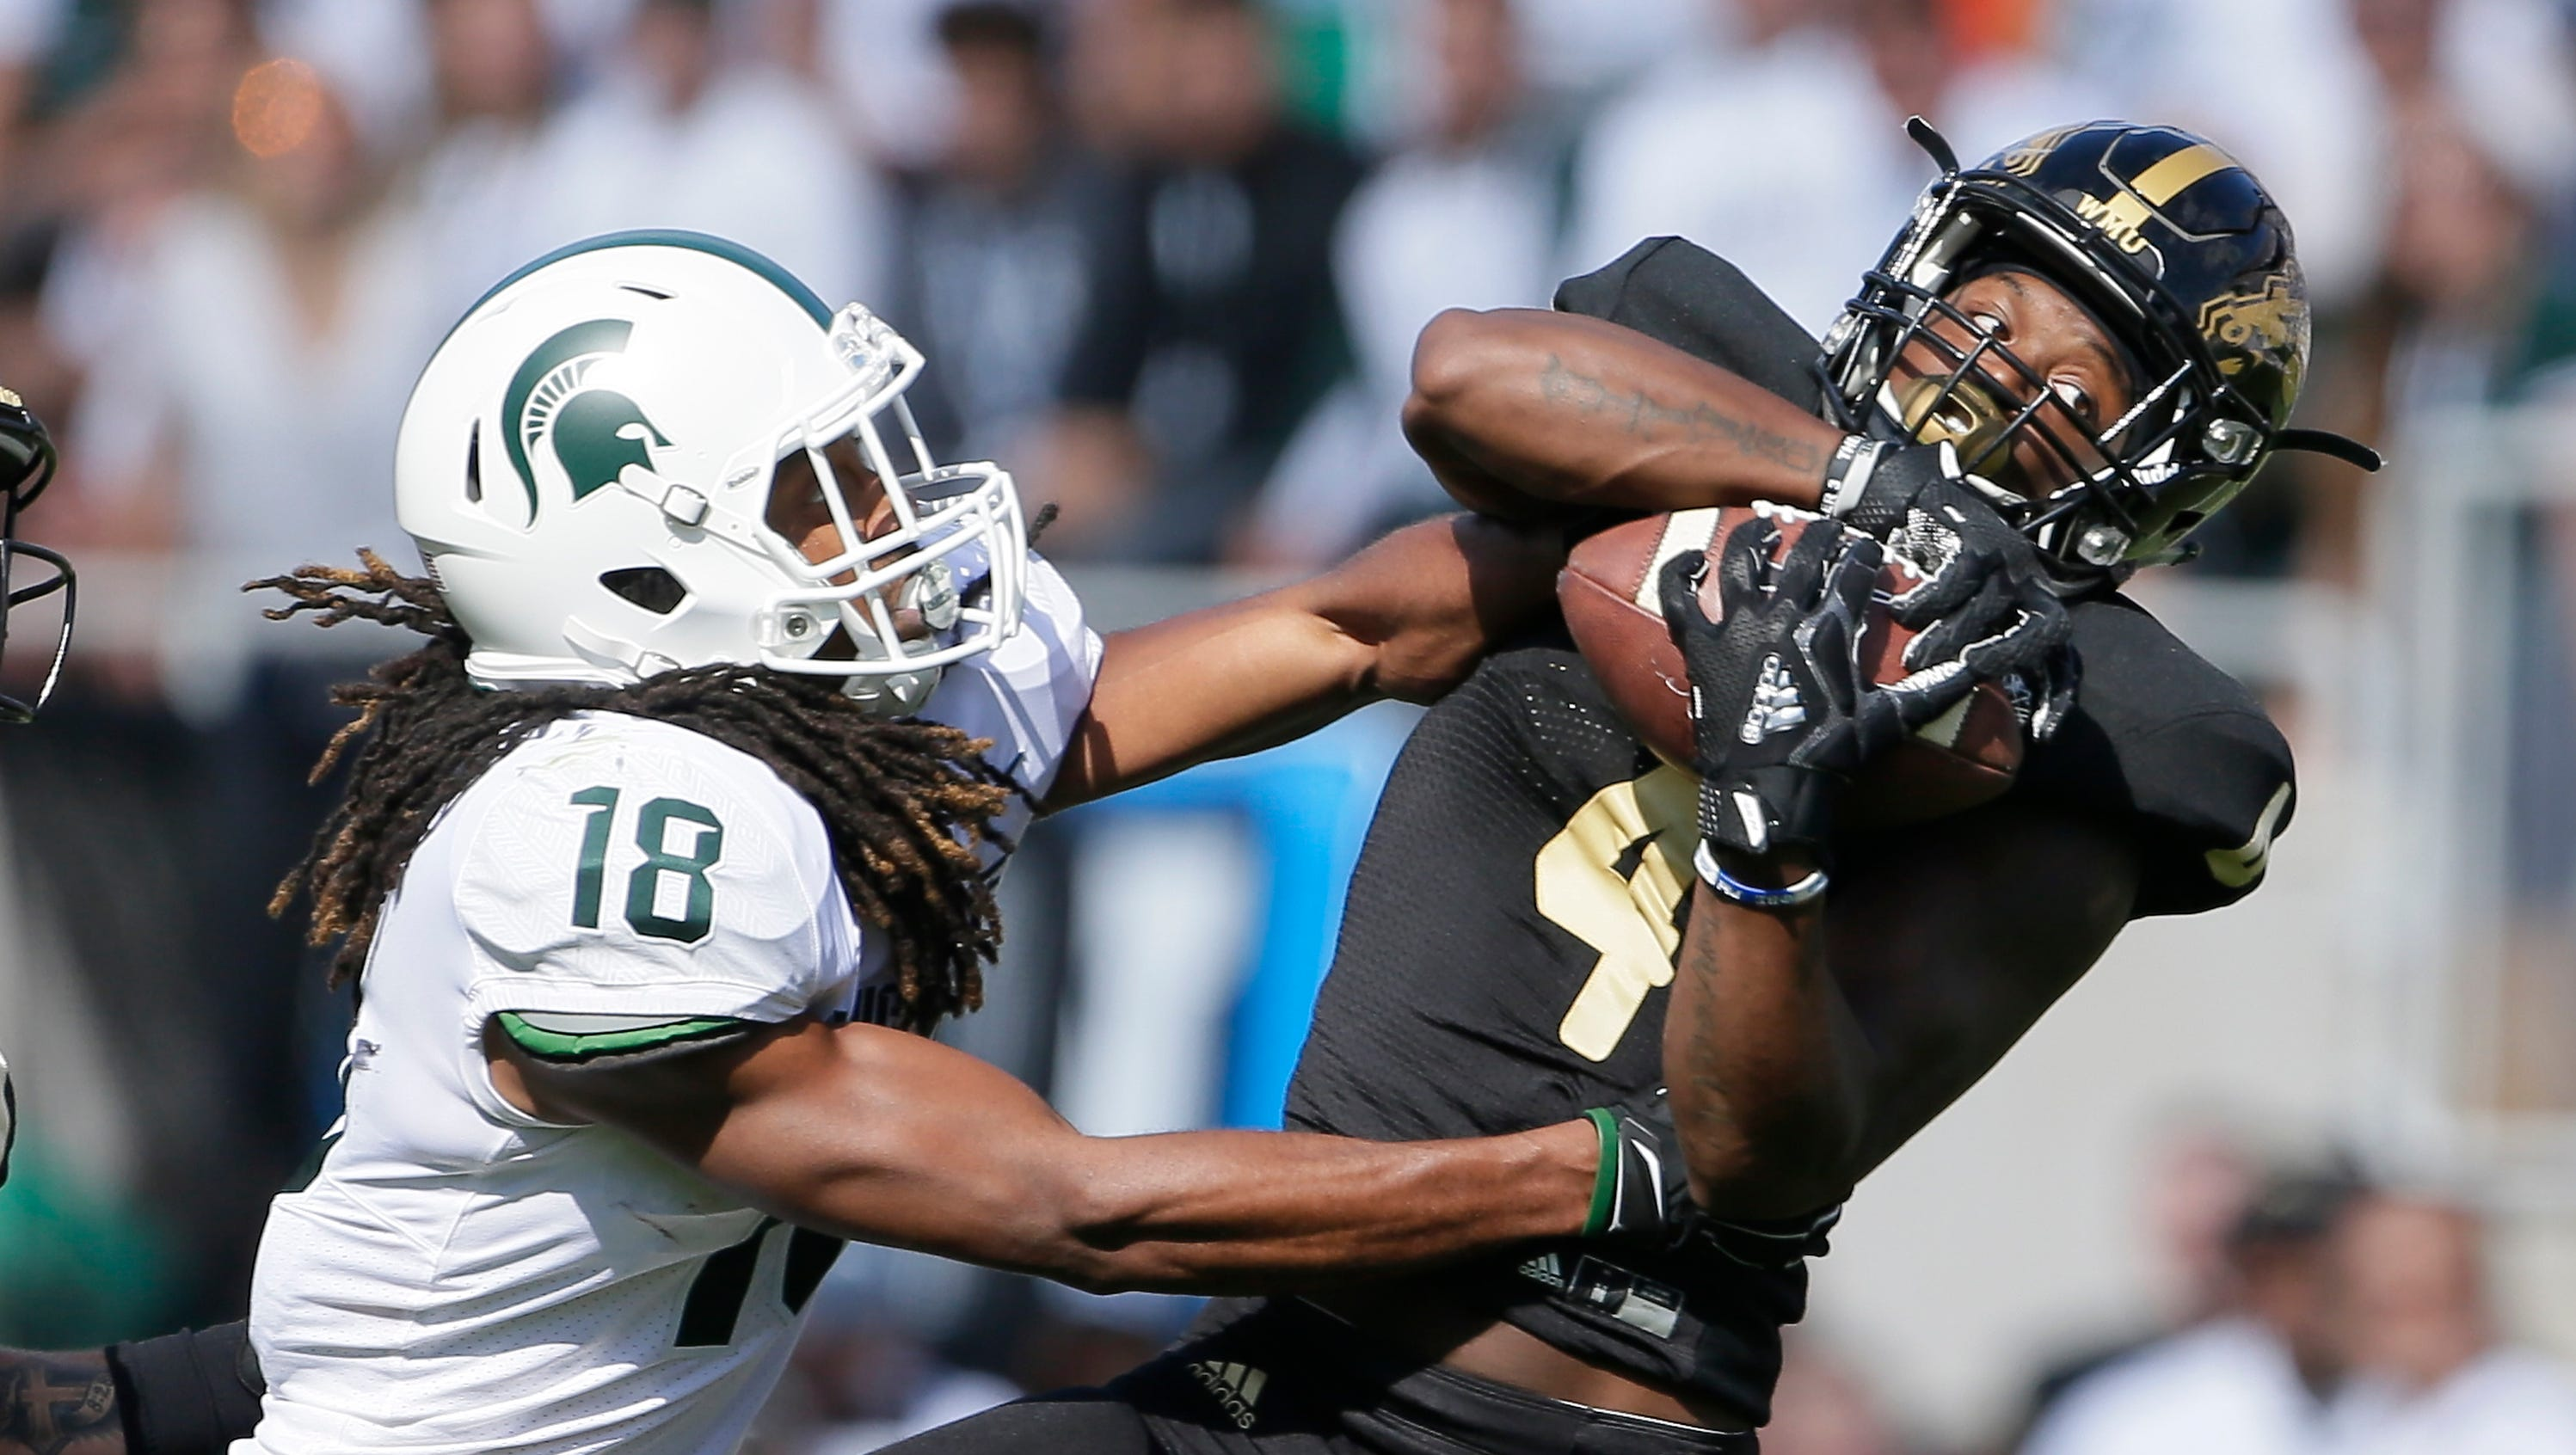 WMU's Darius Phillips one of NFL draft's most exciting dual-threats